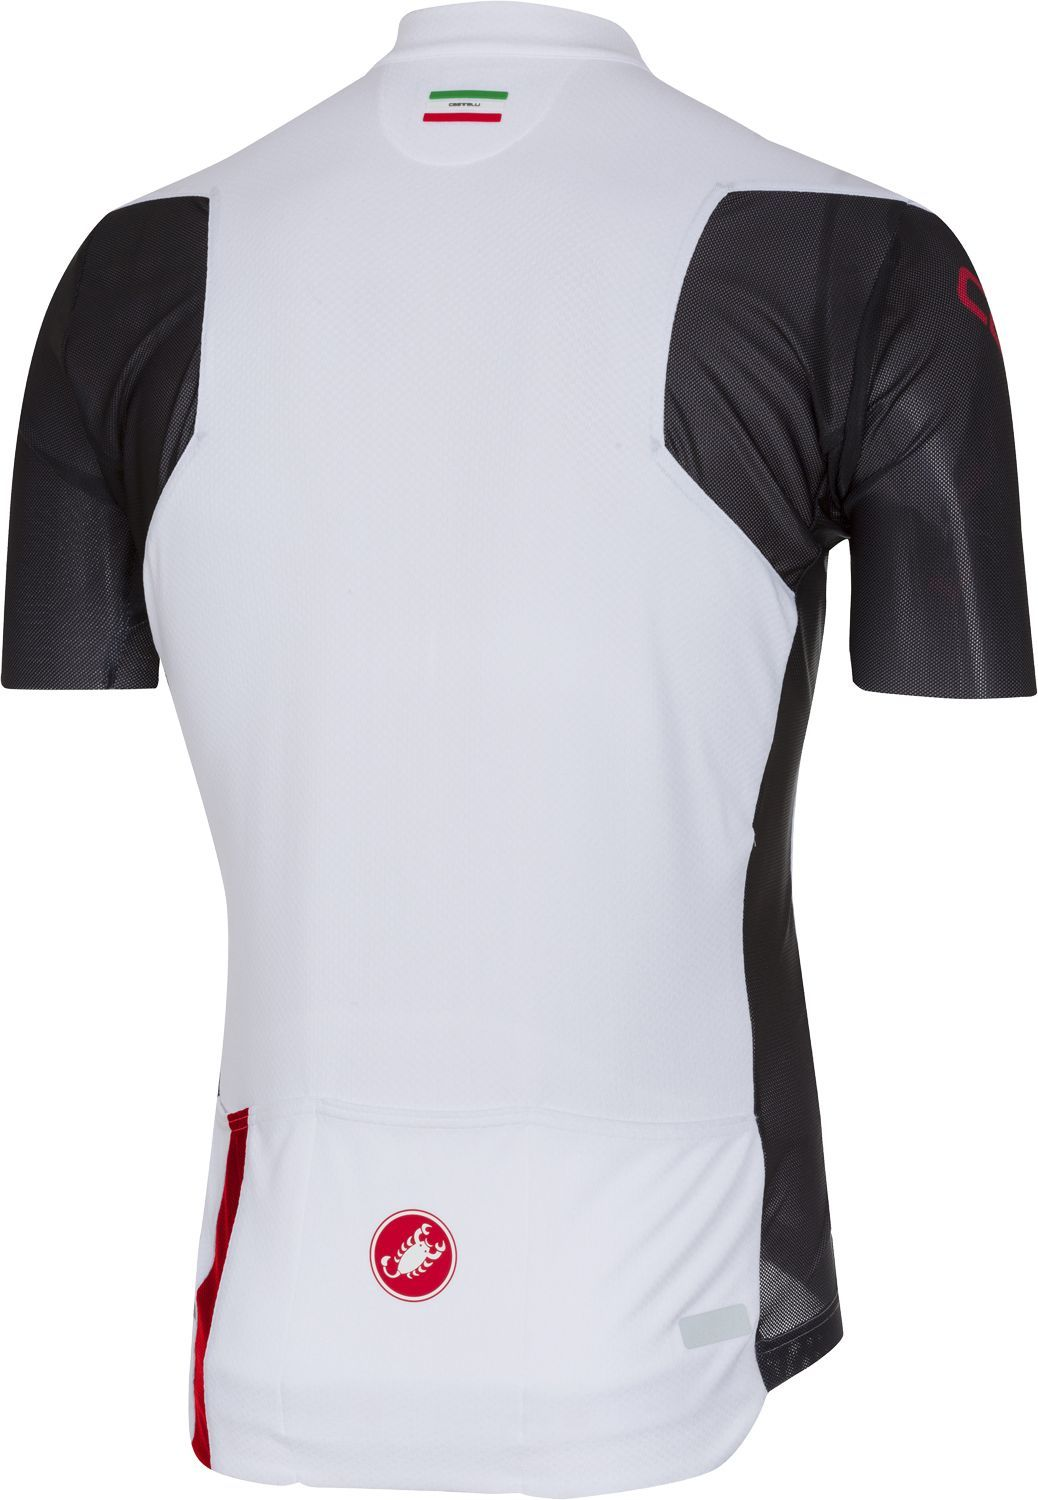 Previous. Castelli ENTRATA 3 short sleeve cycling jersey white · Castelli  ENTRATA 3 short sleeve cycling jersey white 3475f6aa4